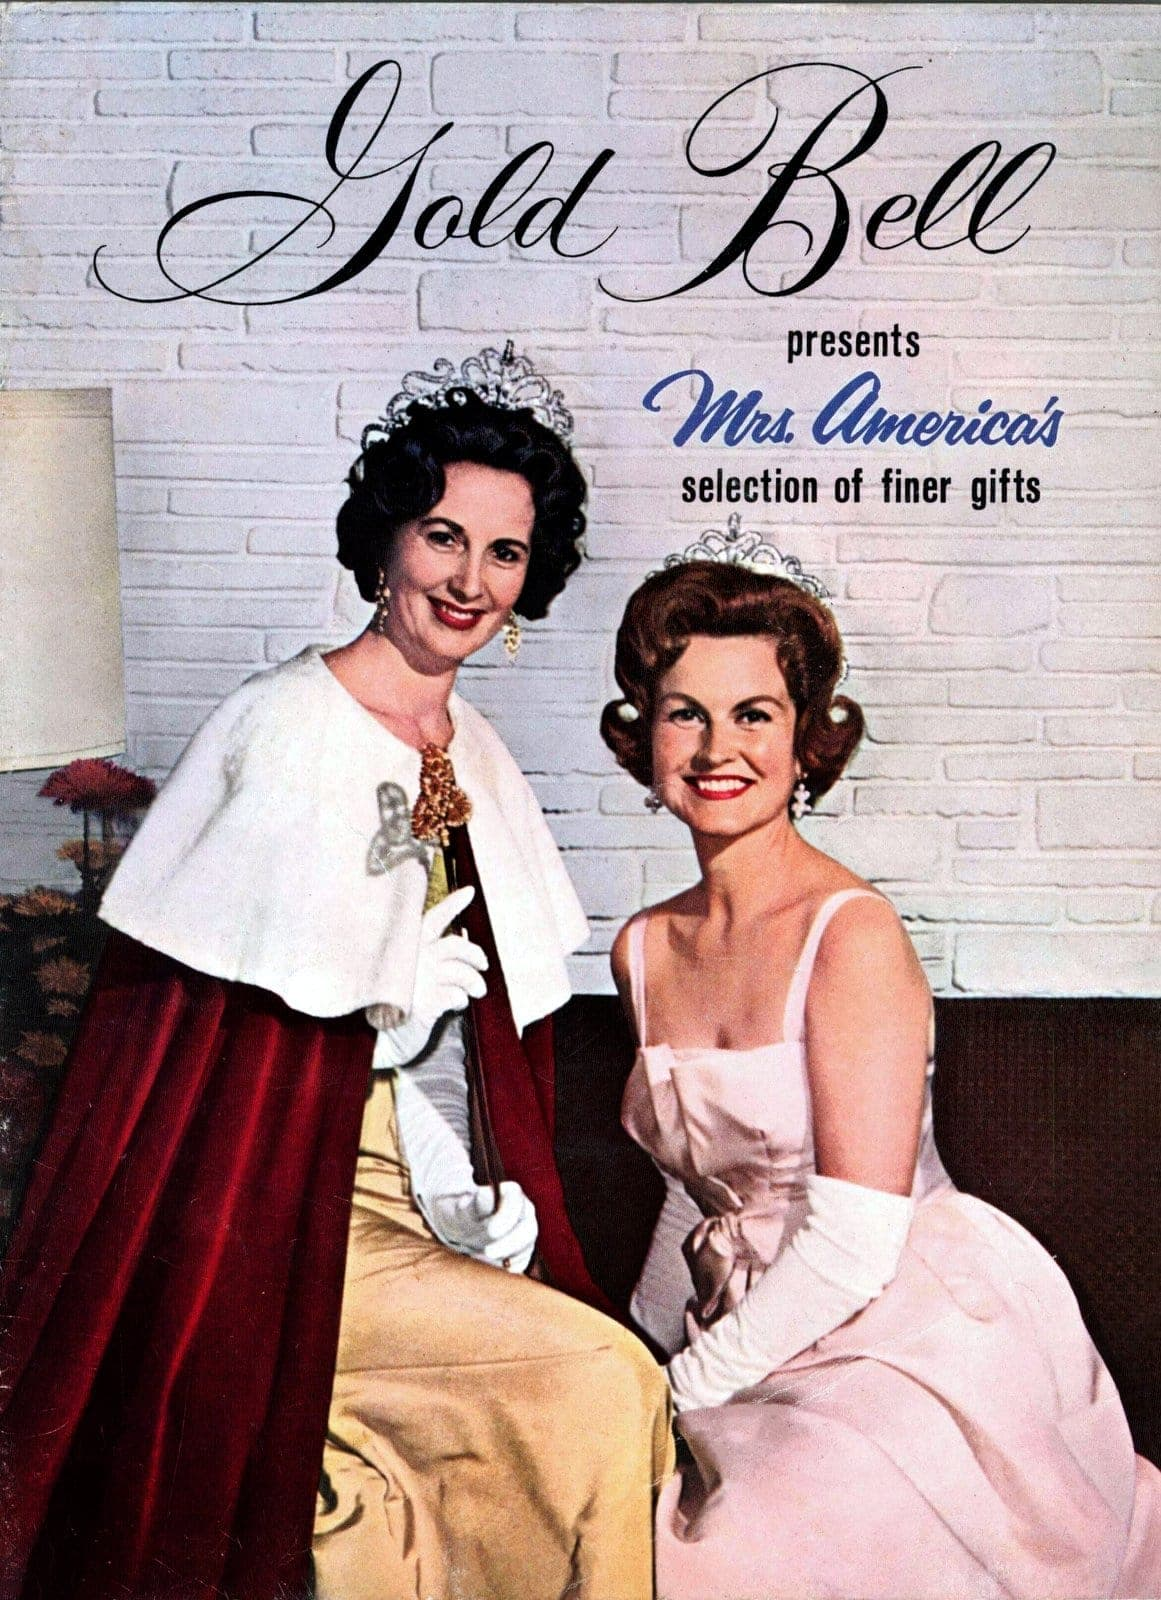 Gold Bell presents Mrs America's selection of finer gifts - 1960s